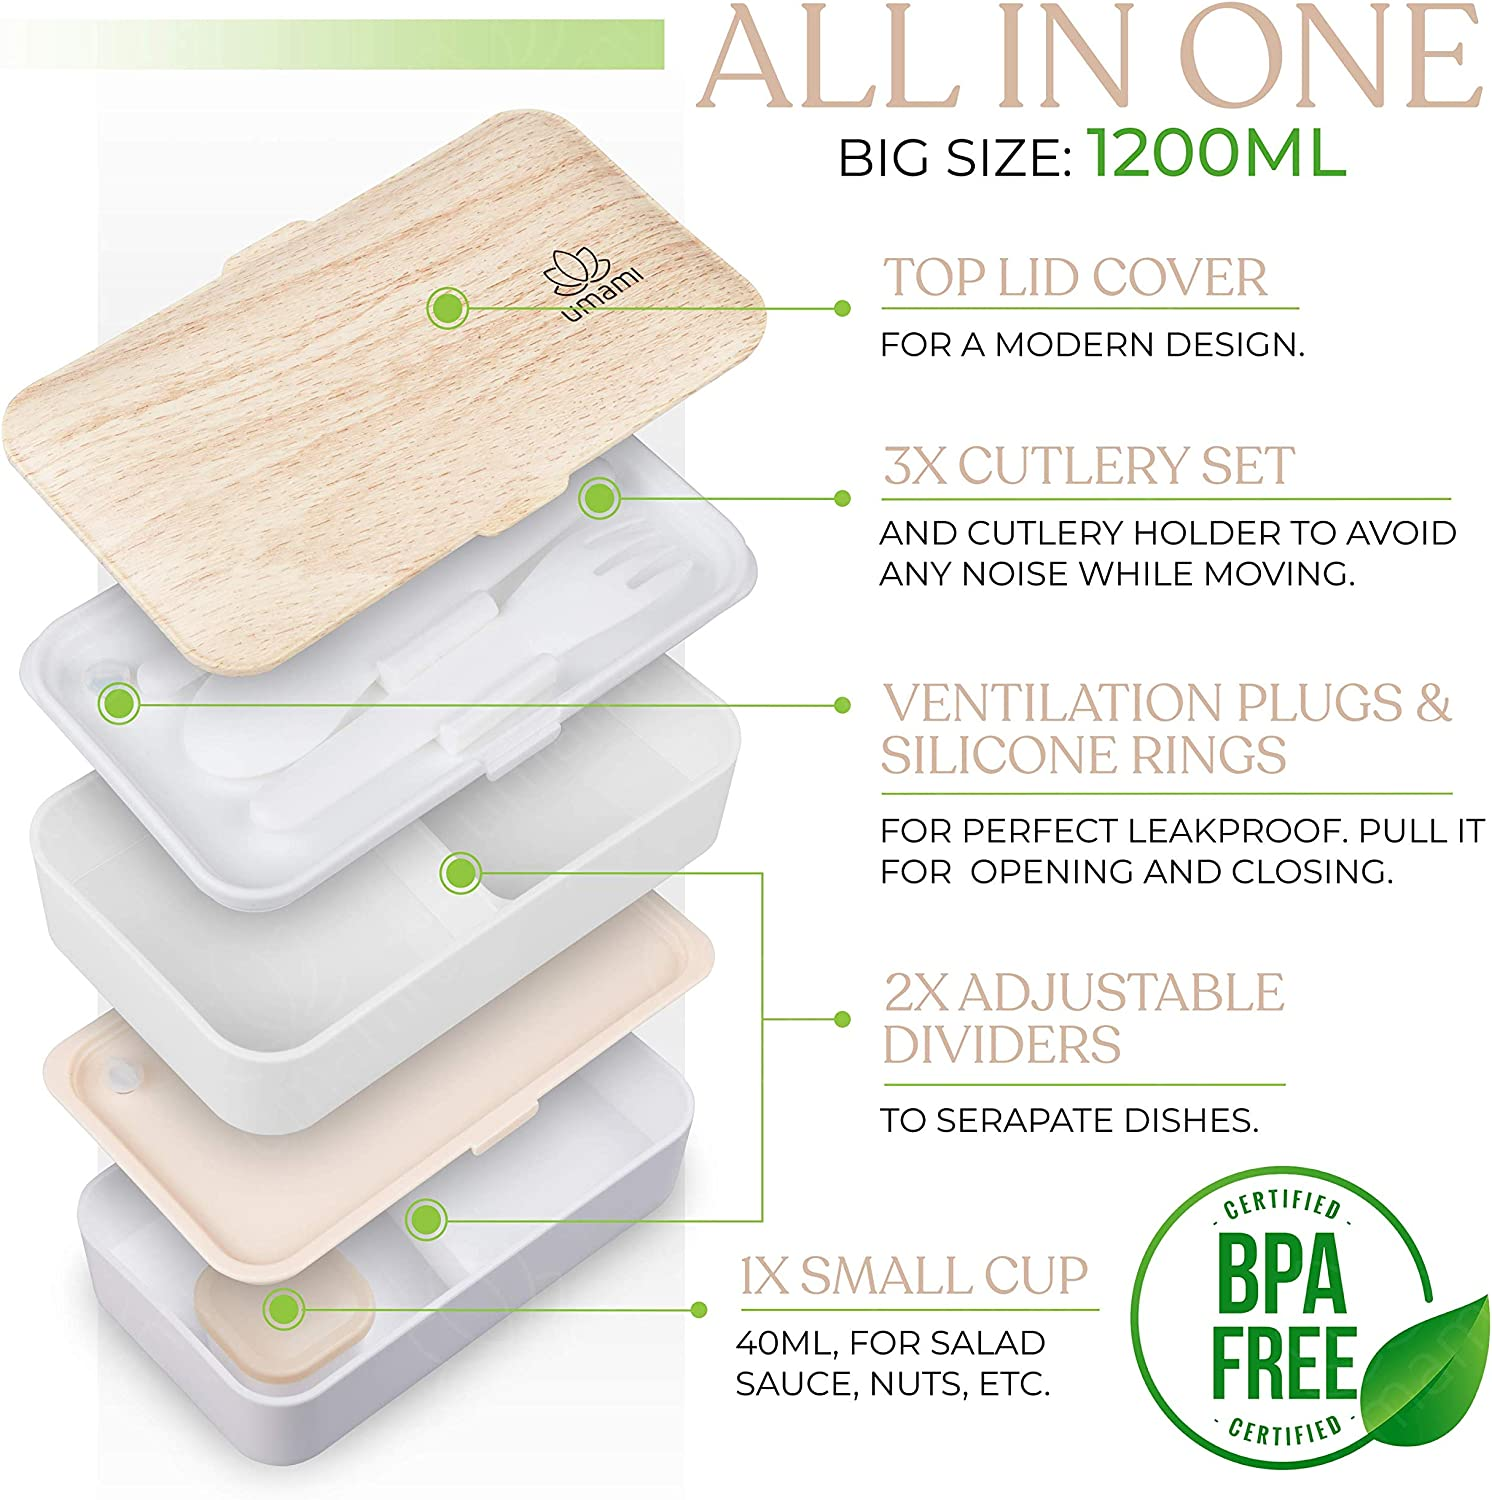 Micro-Waves /& Dishwasher /& Freezer Zero Waste Japanese Hermetic Box Includes 1 Sauce Pot /& Cutlery 3 Pieces UMAMI Premium Bento Lunch Box for Adults//Children 2 Compartments BPA Free